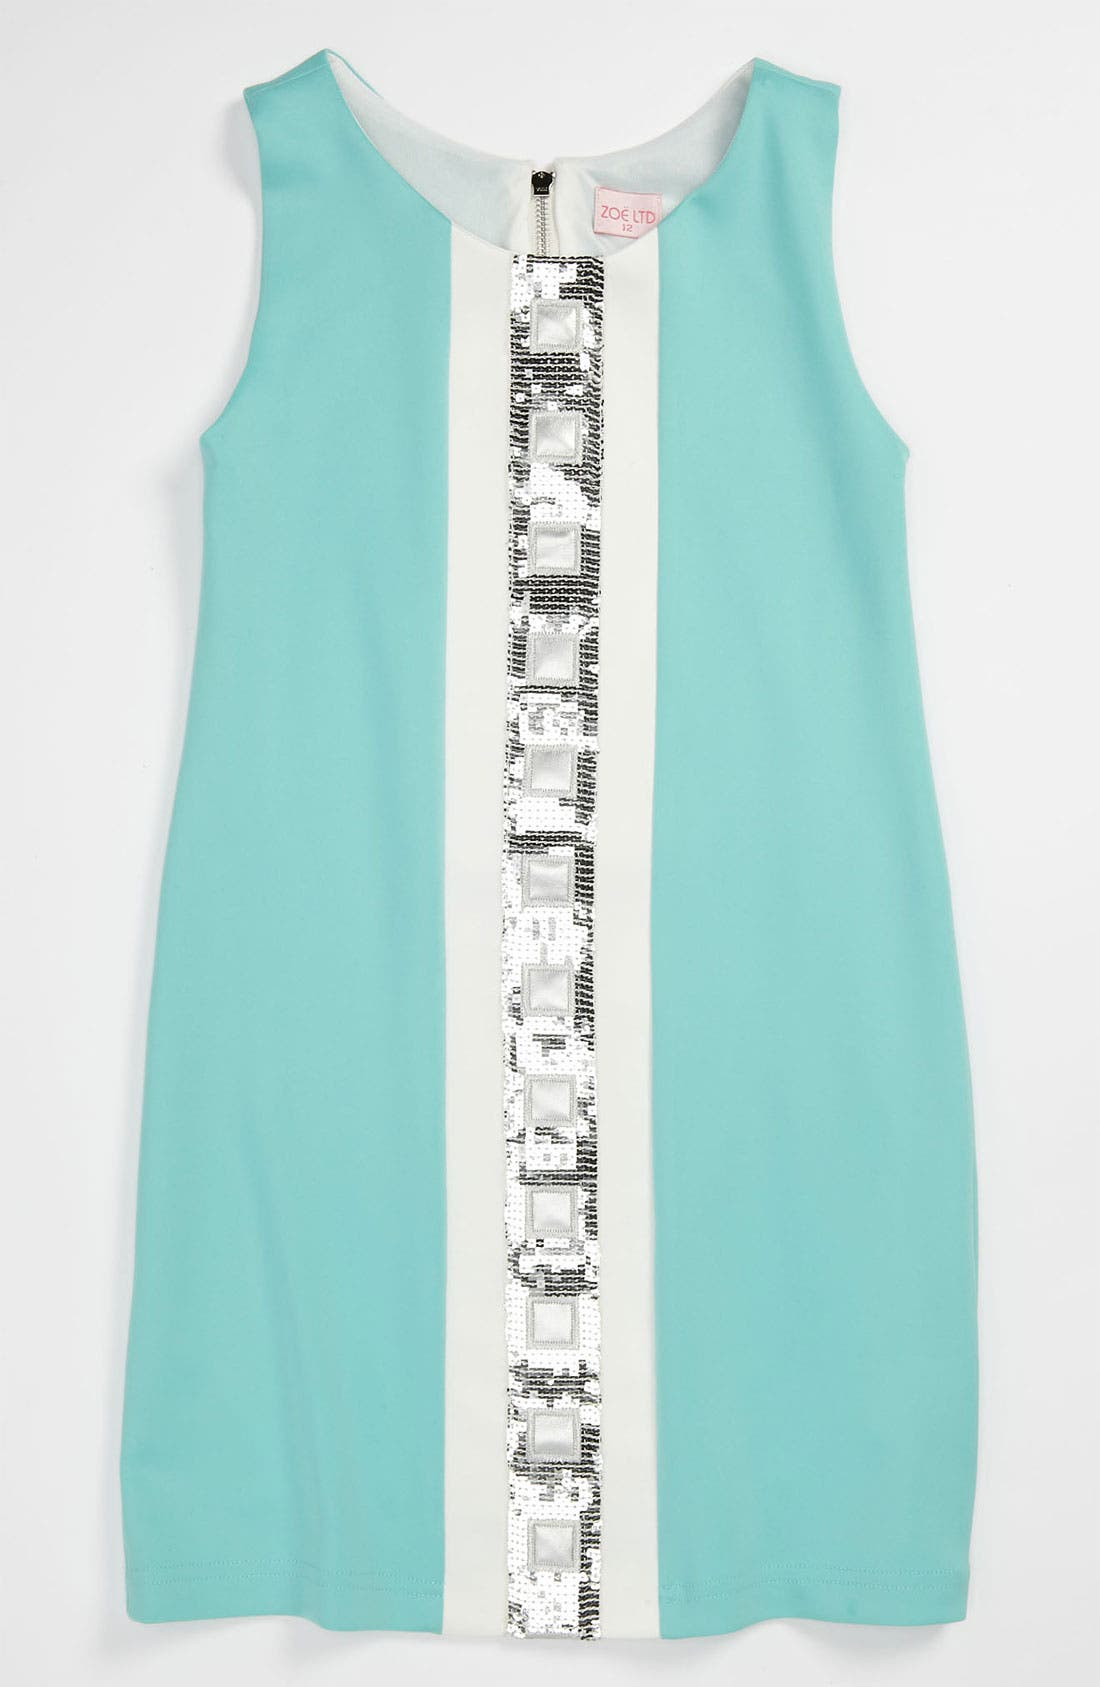 Main Image - Zoe 'Mod' Sequin Squares Sleeveless Dress (Big Girls)